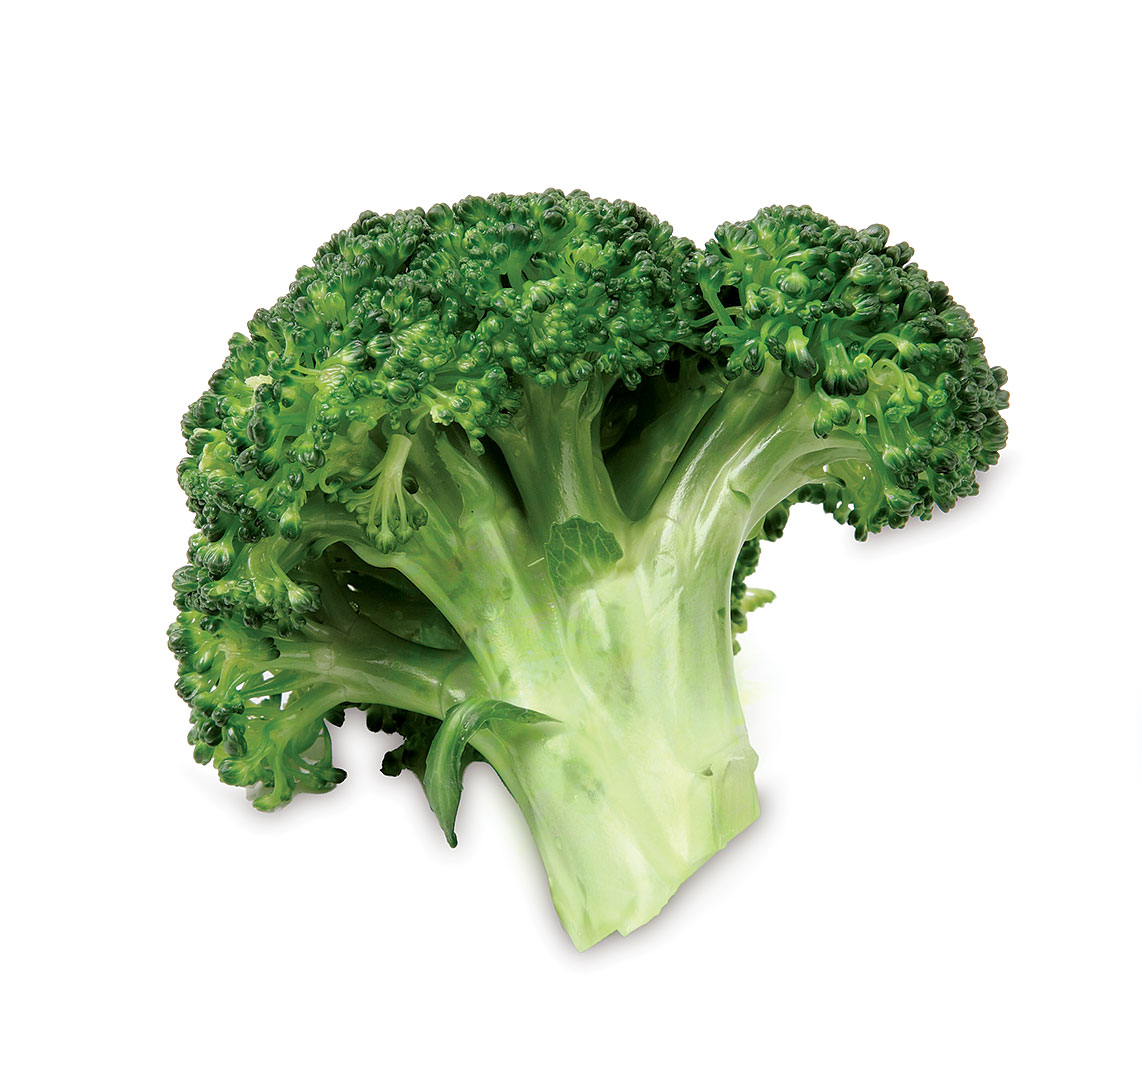 a green broccoli floret on a white background